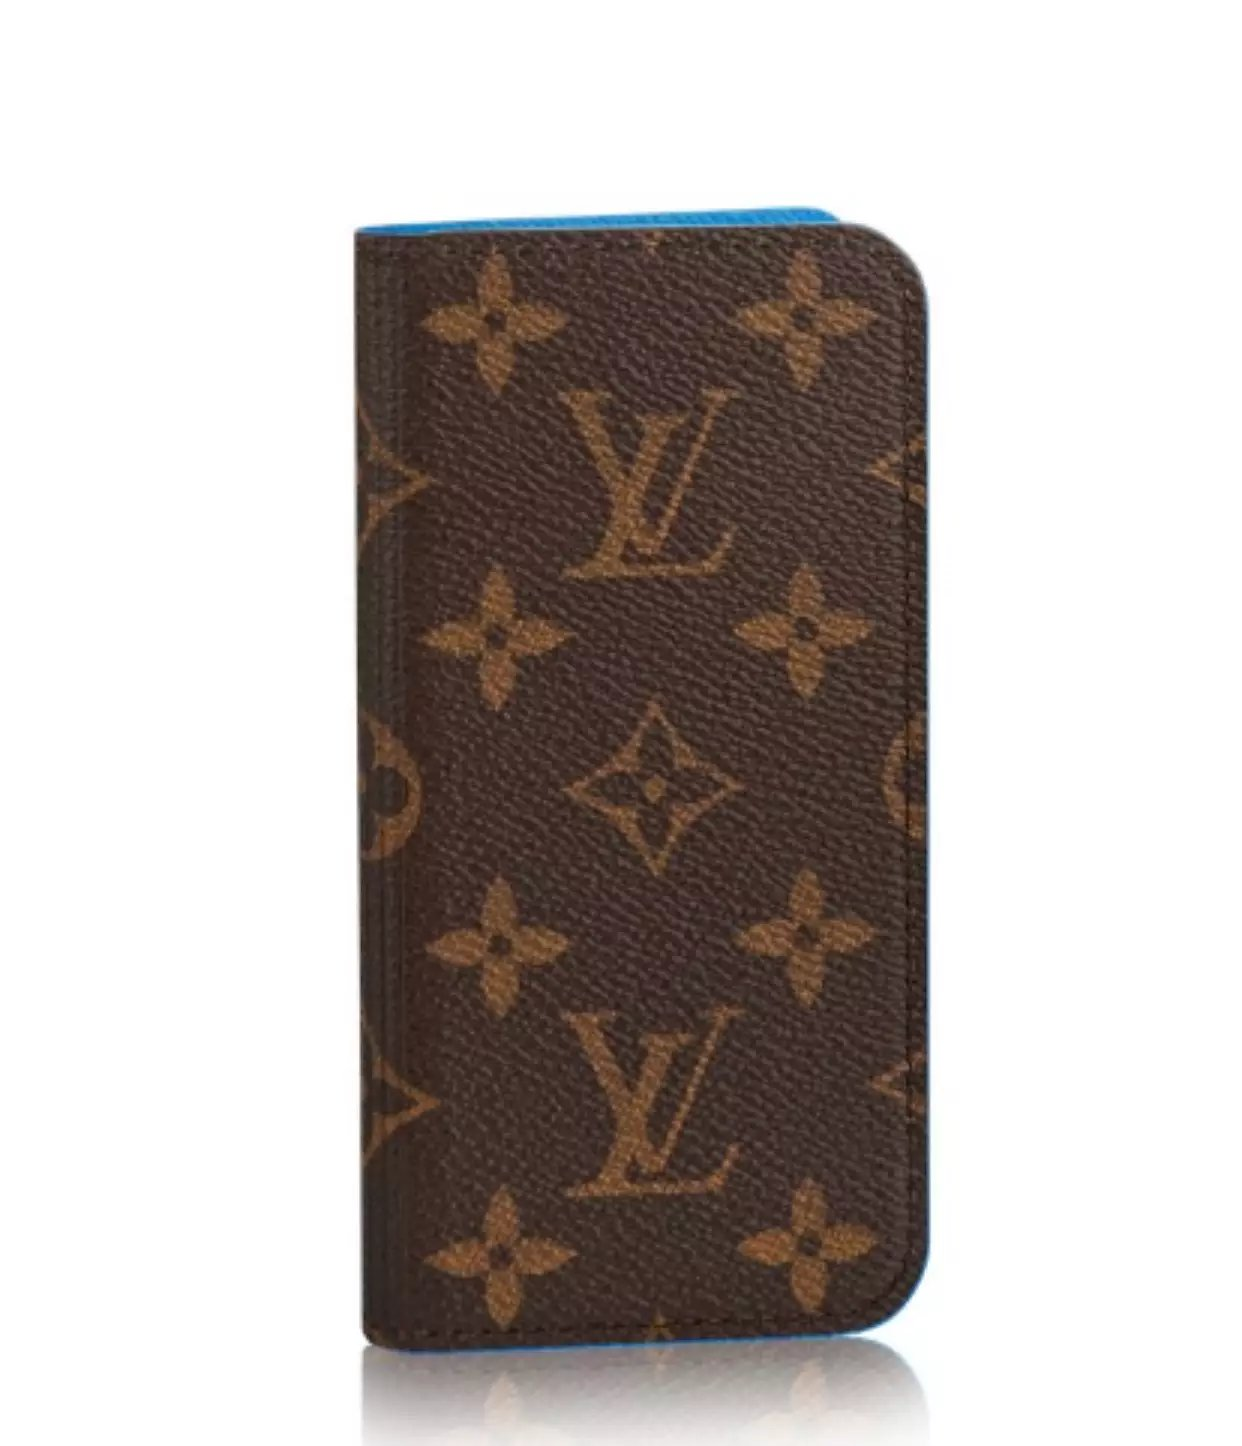 individuelle iphone hülle mini iphone hülle Louis Vuitton iphone 8 Plus hüllen preis für iphone 8 Plus hülle i phone 8 Plus handy hülle htc one wie viel kostet das iphone 8 Plus ipohne 8 Plus schutzhülle iphone 3